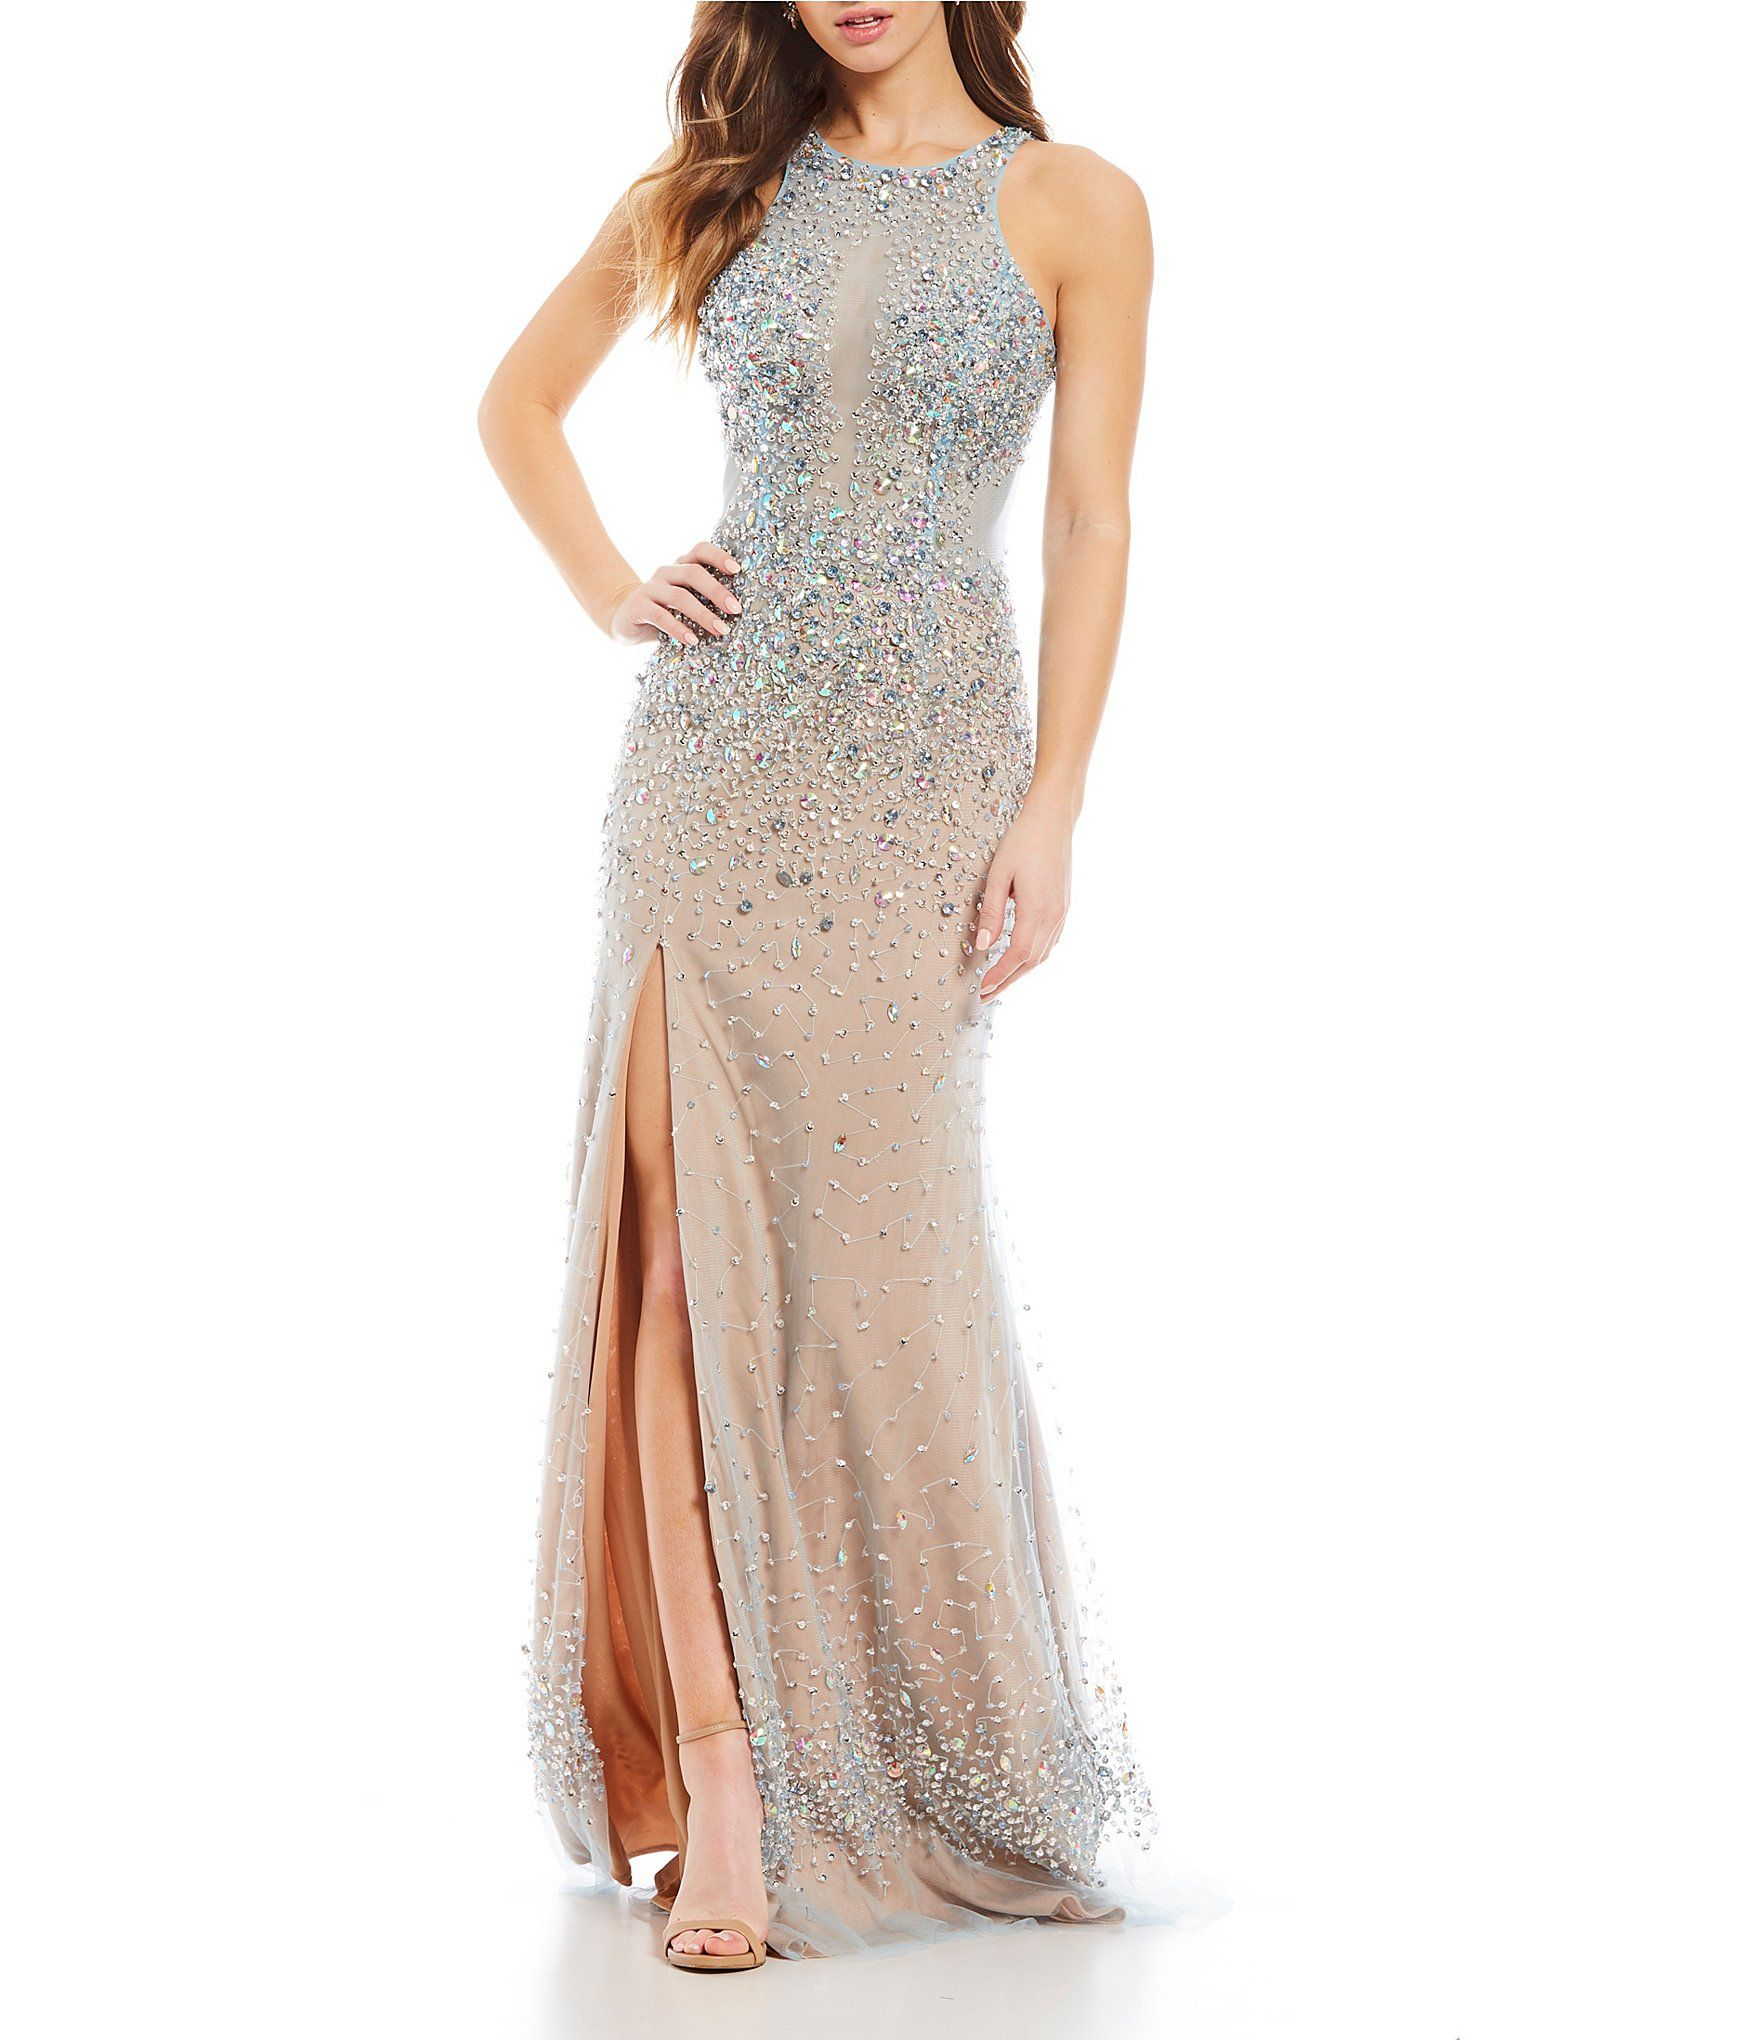 Glamour By Terani Couture Beaded Long Dress Dillards Dream Formal